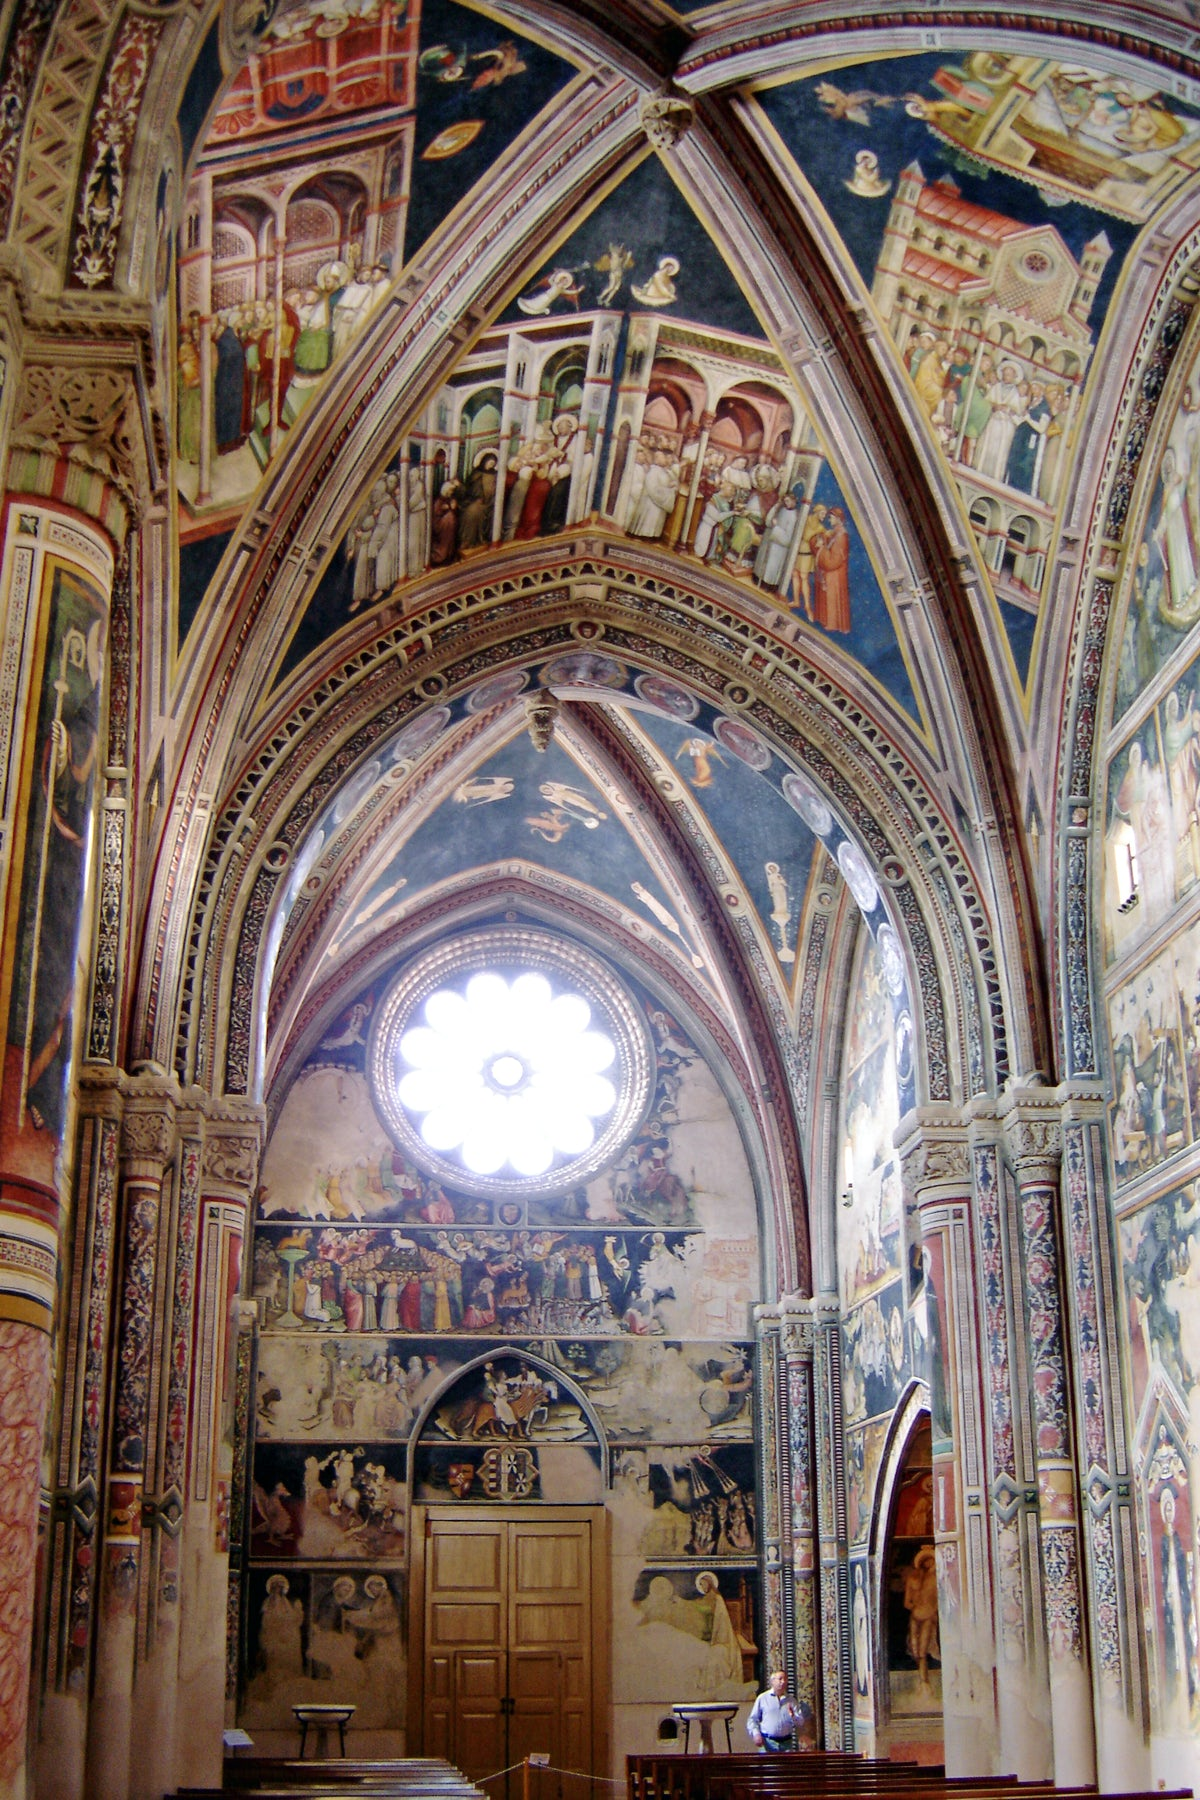 Basilica di Santa Caterina d'Alessandria – the church of fresco masterpieces in Apulia